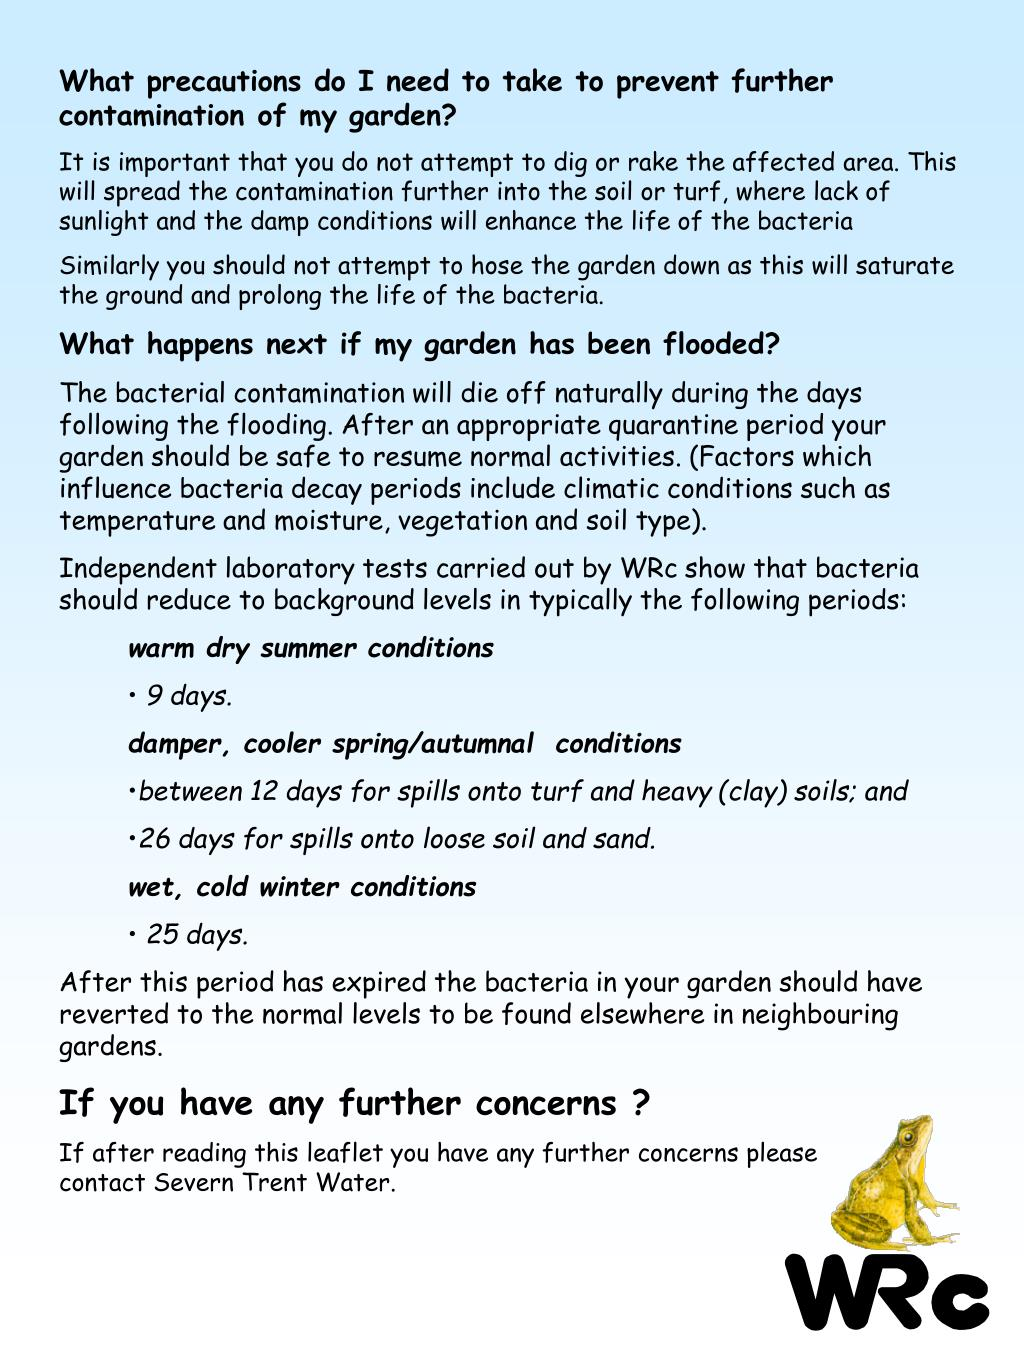 What precautions do I need to take to prevent further contamination of my garden?